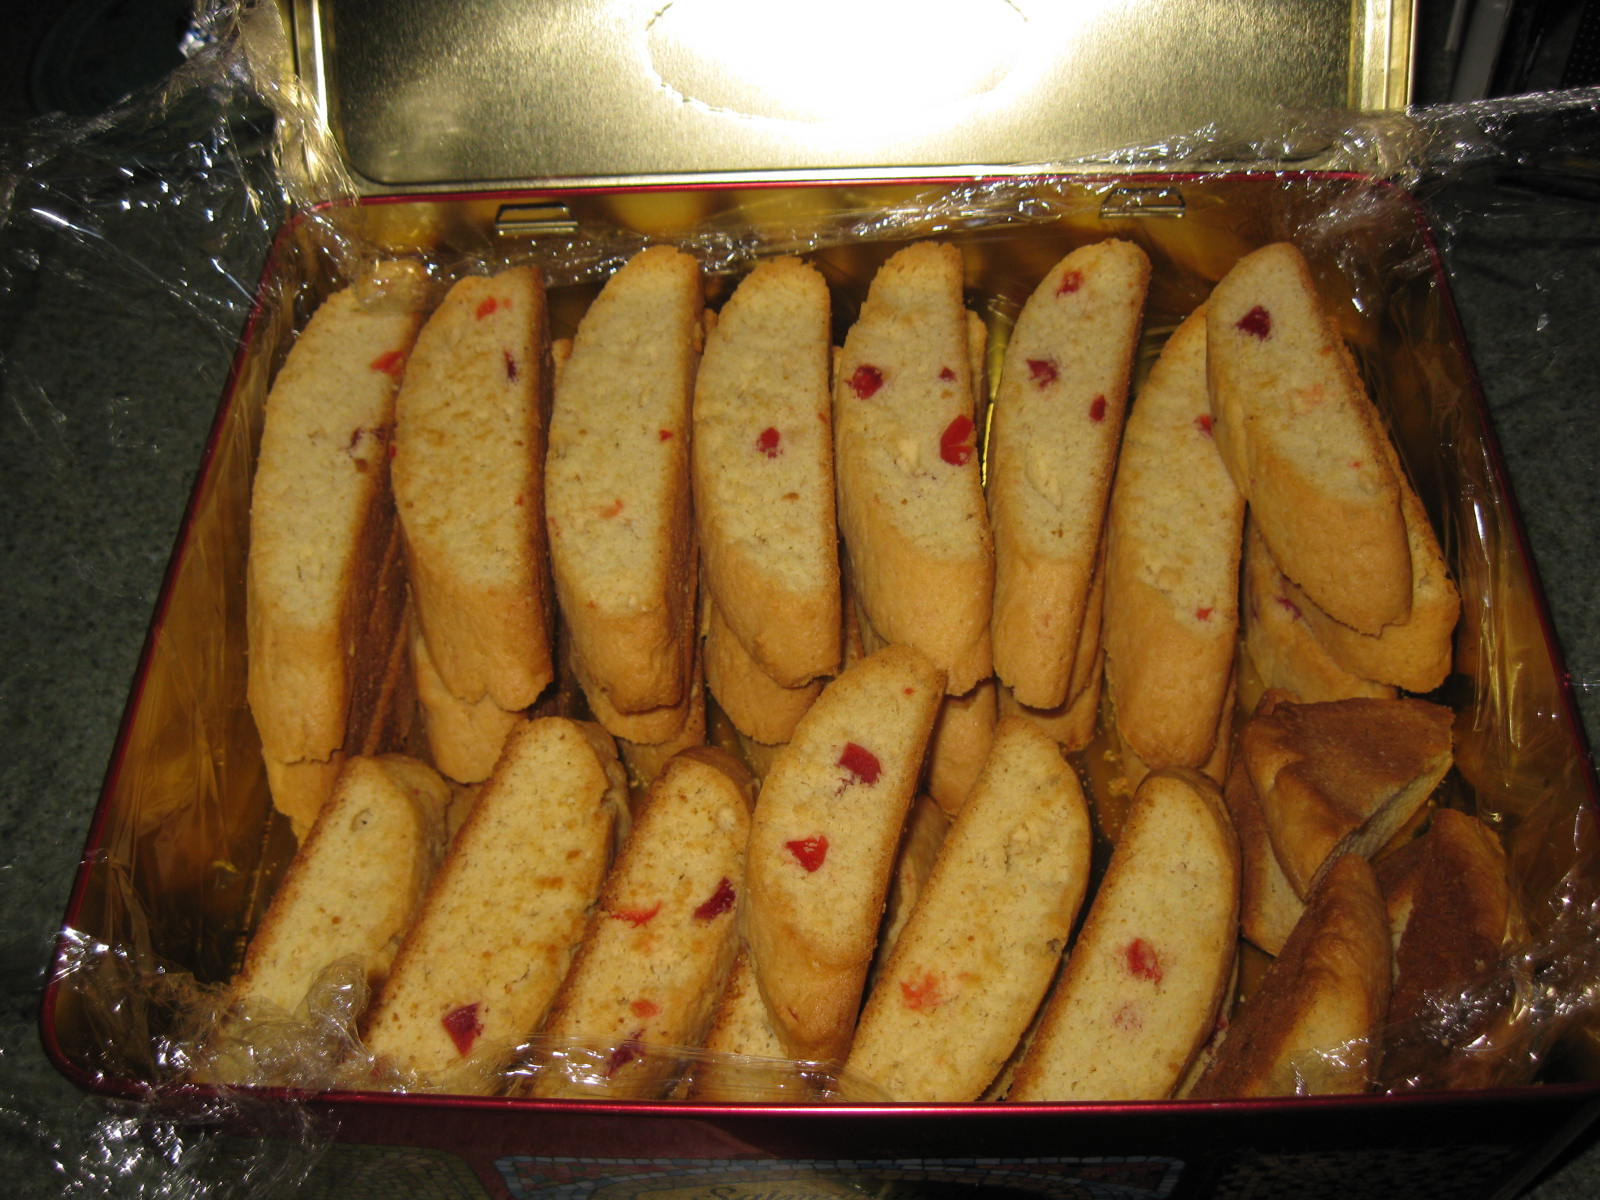 Above, Cherry Almond Biscotti